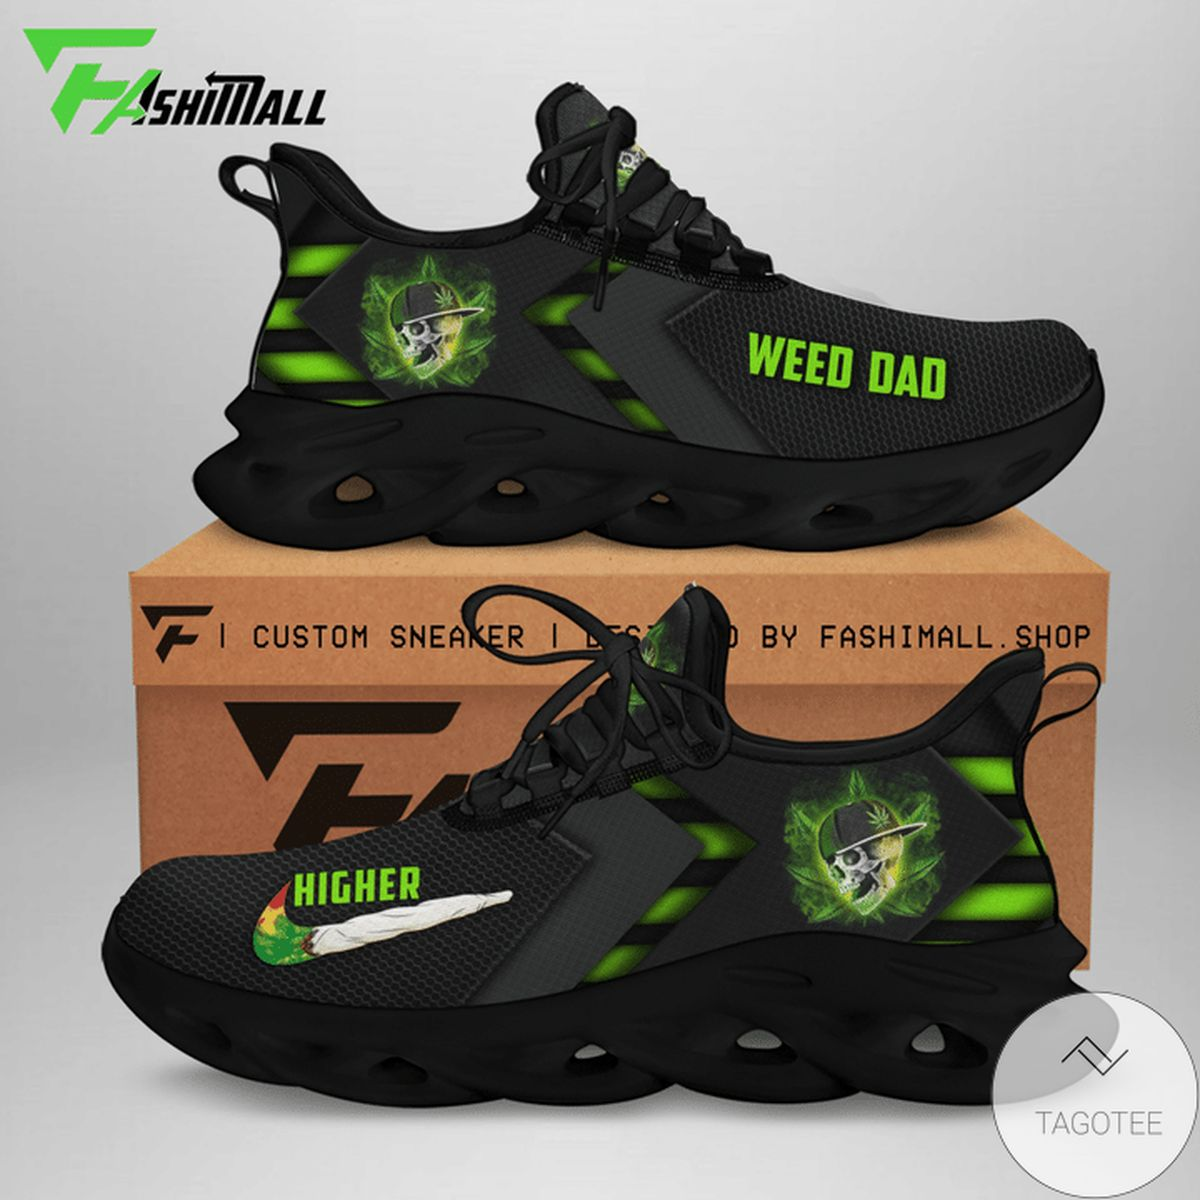 We Dad Cannabist Skull Max Soul Shoes